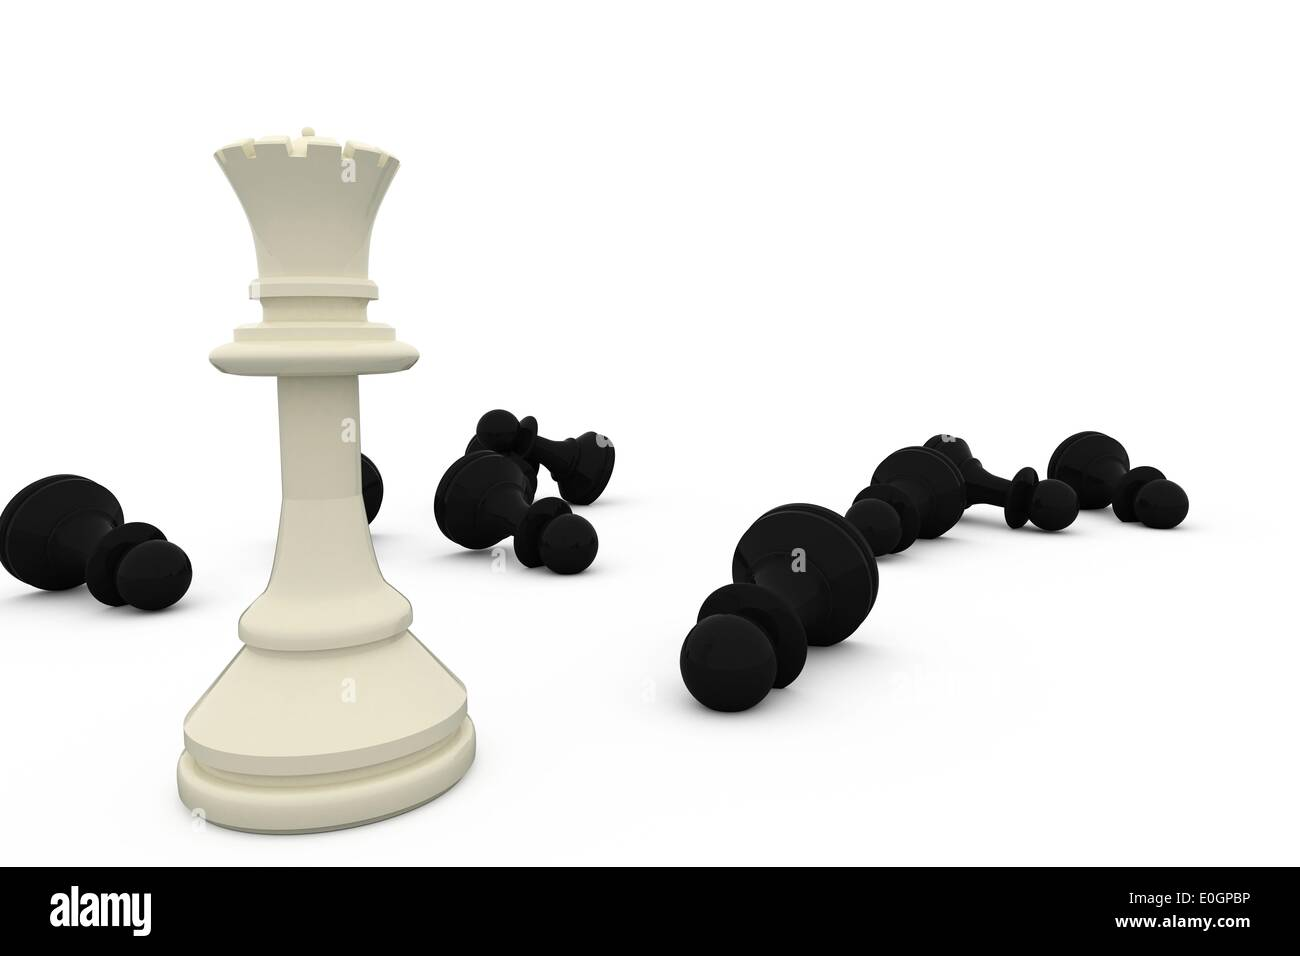 White queen standing among fallen black pieces - Stock Image